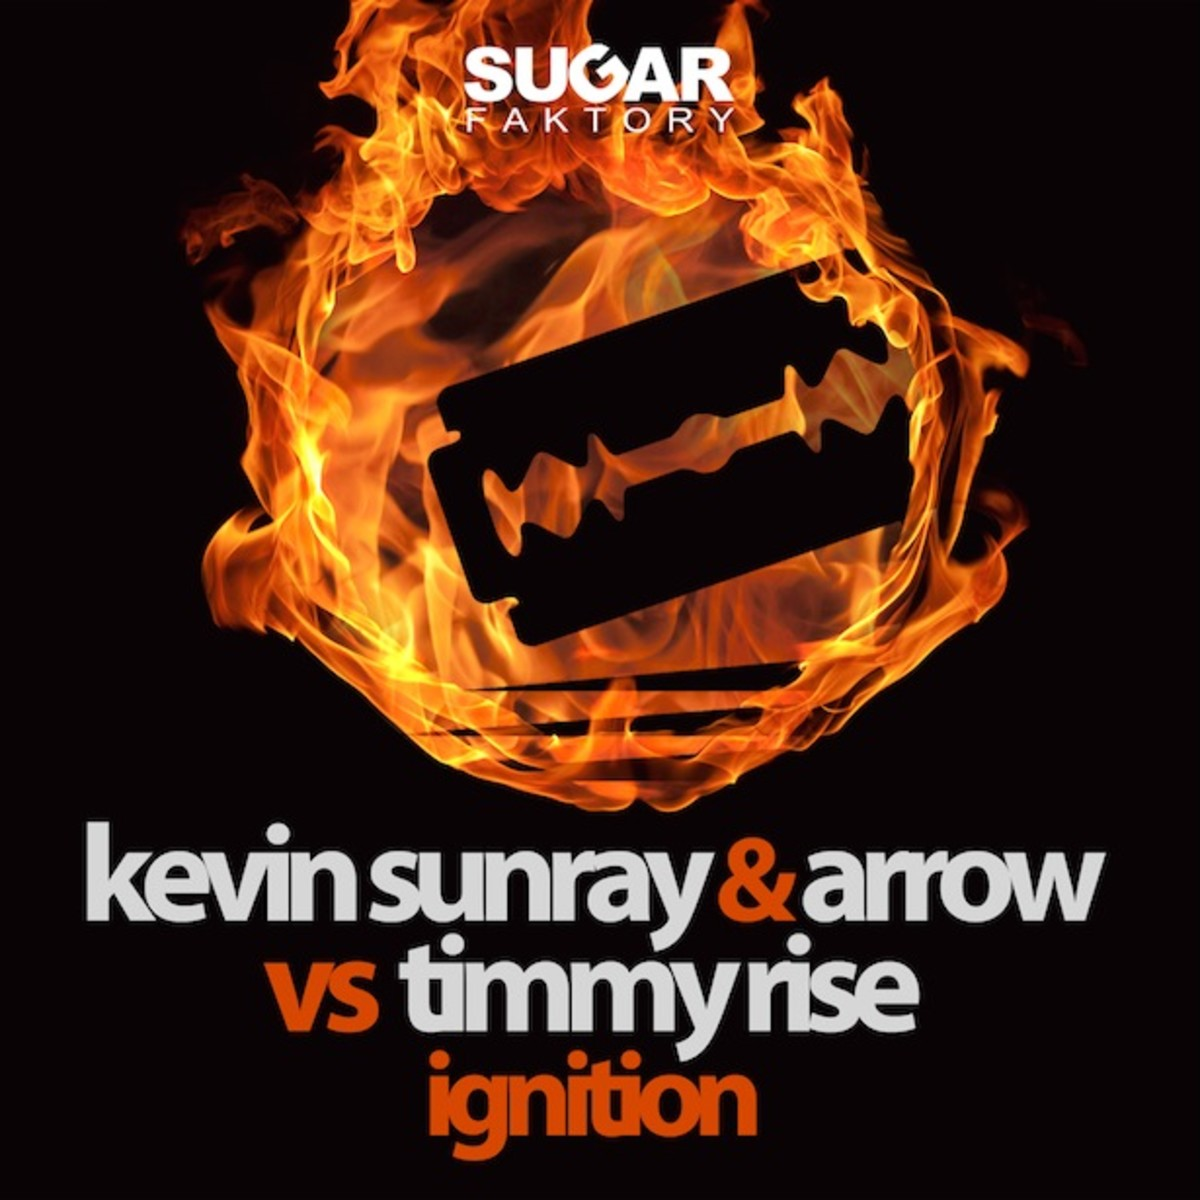 PREMIERE: Kevin Sunray & Arrow vs. Timmy Rise - Ignition (Electro)